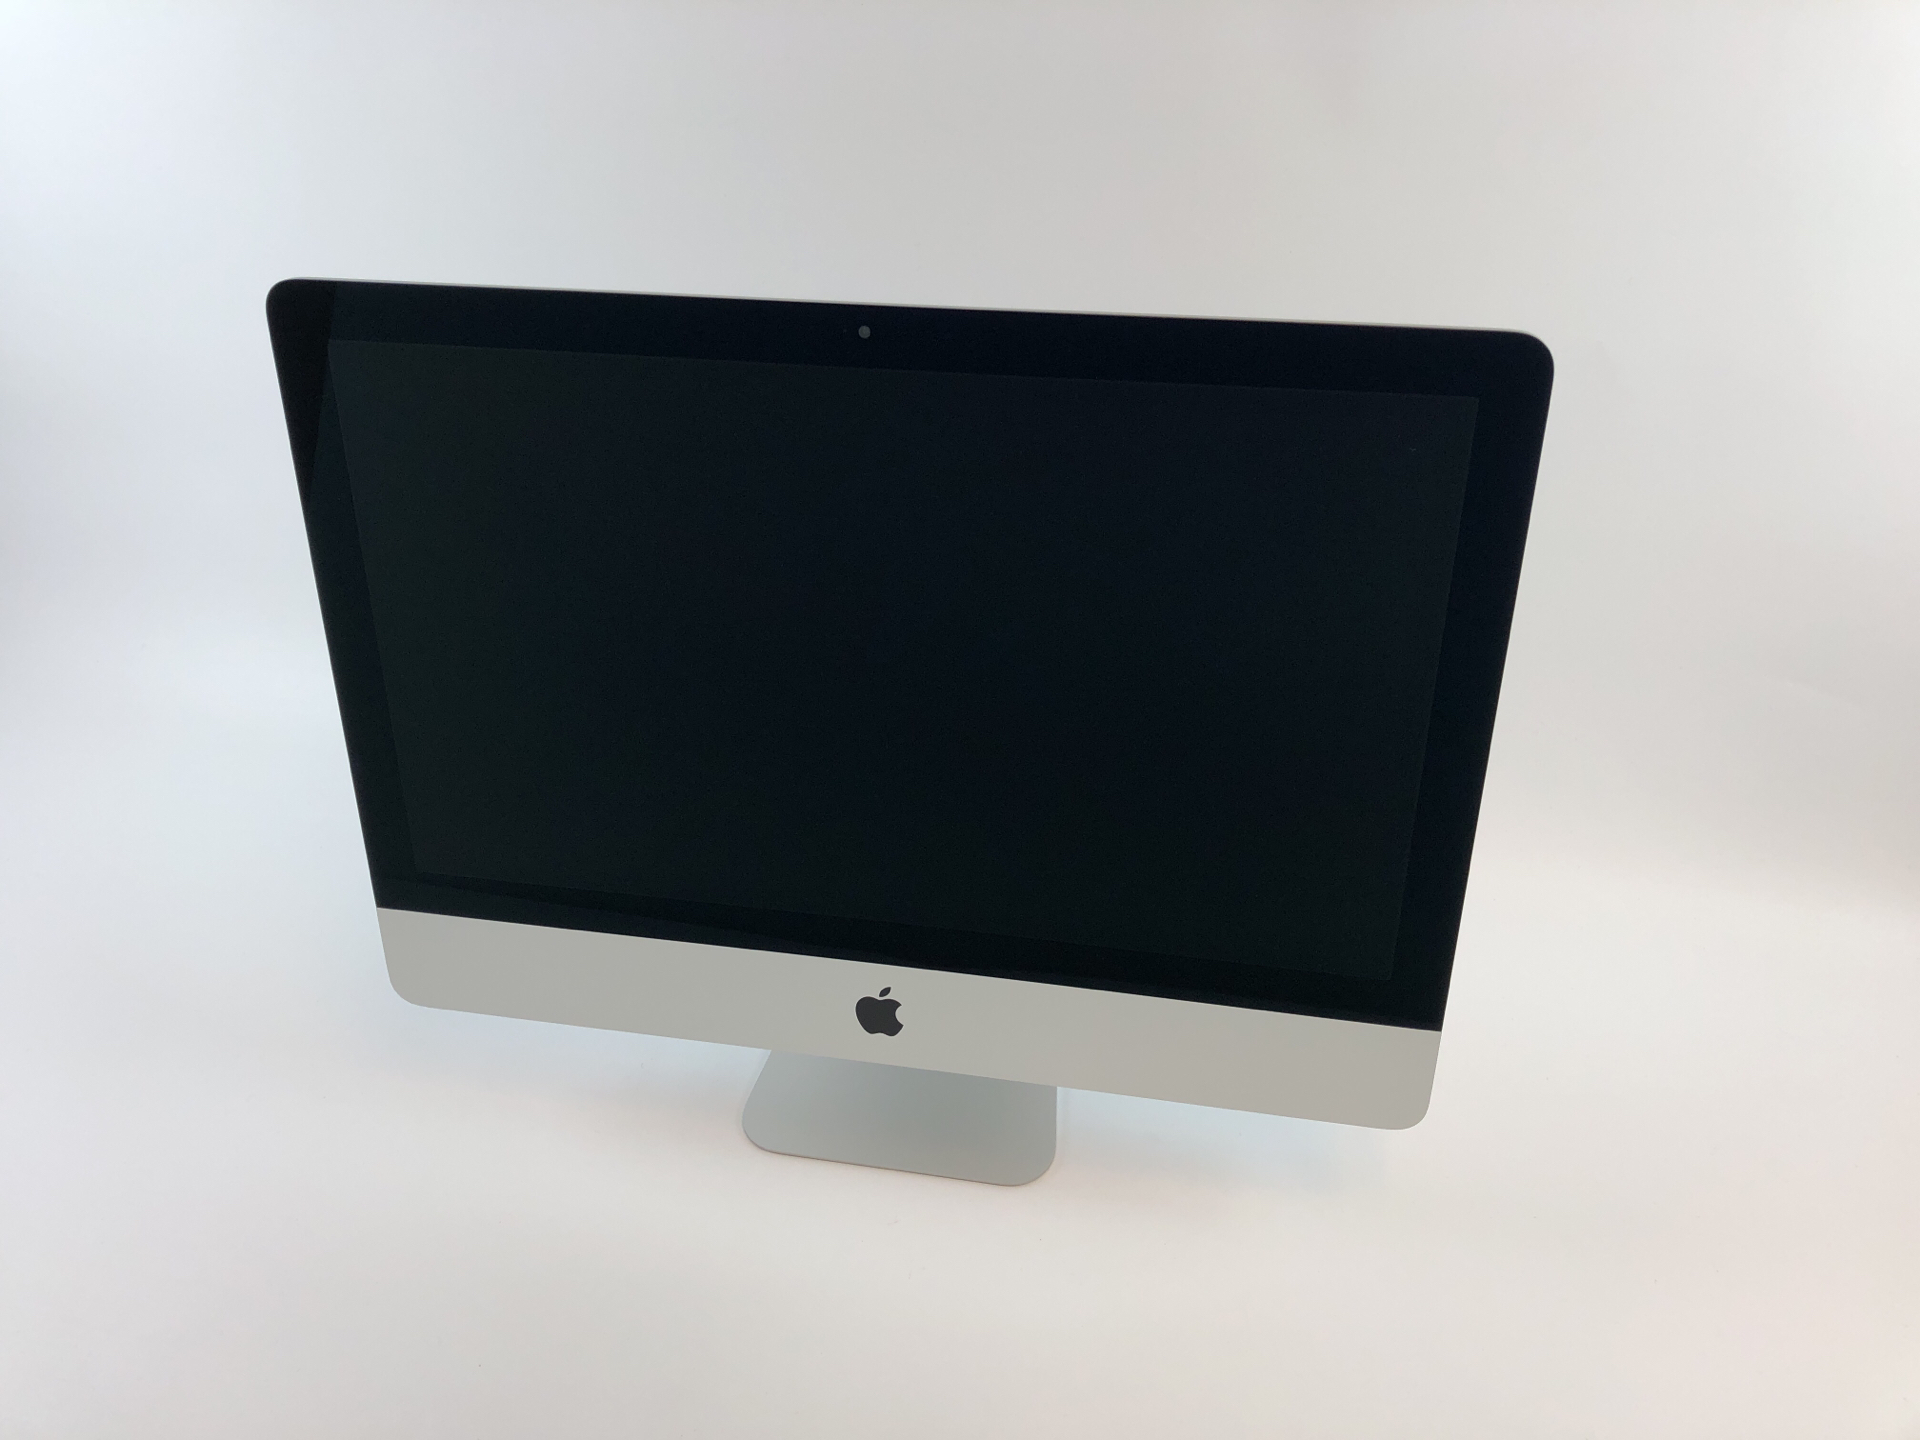 "iMac 21.5"" Late 2012 (Intel Quad-Core i5 2.9 GHz 8 GB RAM 1 TB HDD), Intel Quad-Core i5 2.9 GHz, 8 GB RAM, 1 TB HDD, Afbeelding 1"